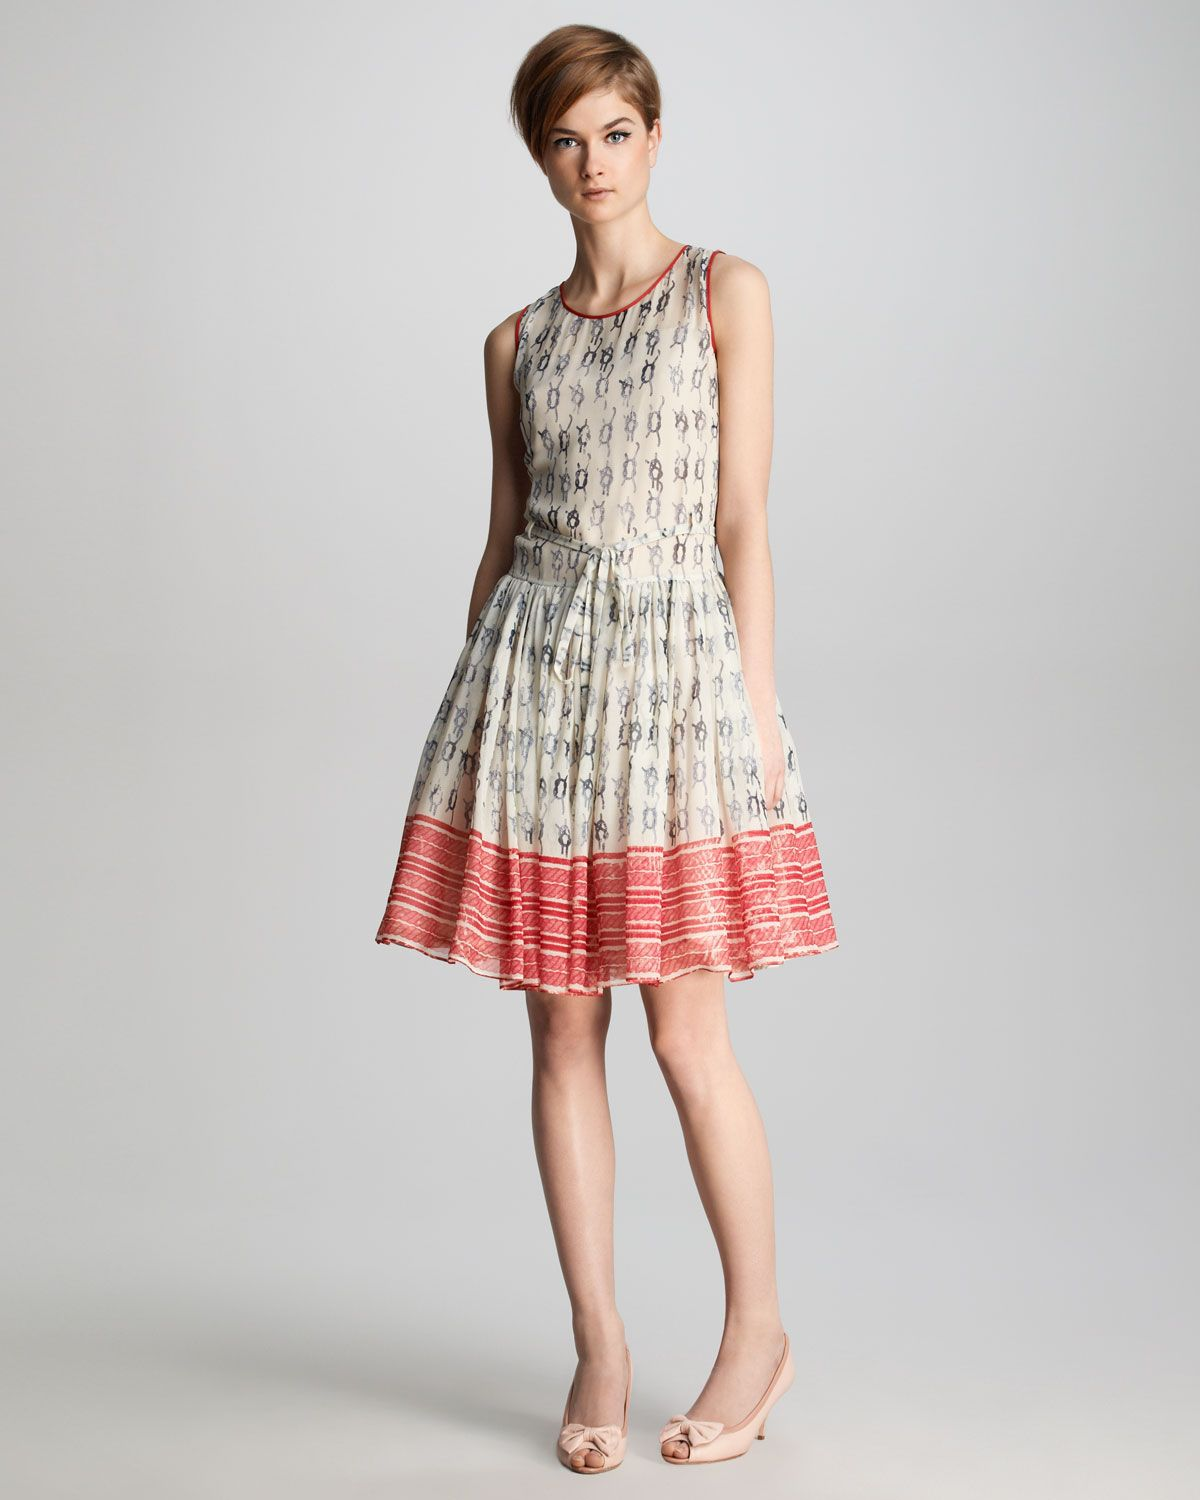 RED Valentino Knot-Print Georgette Dress - Neiman Marcus | Clothes ...